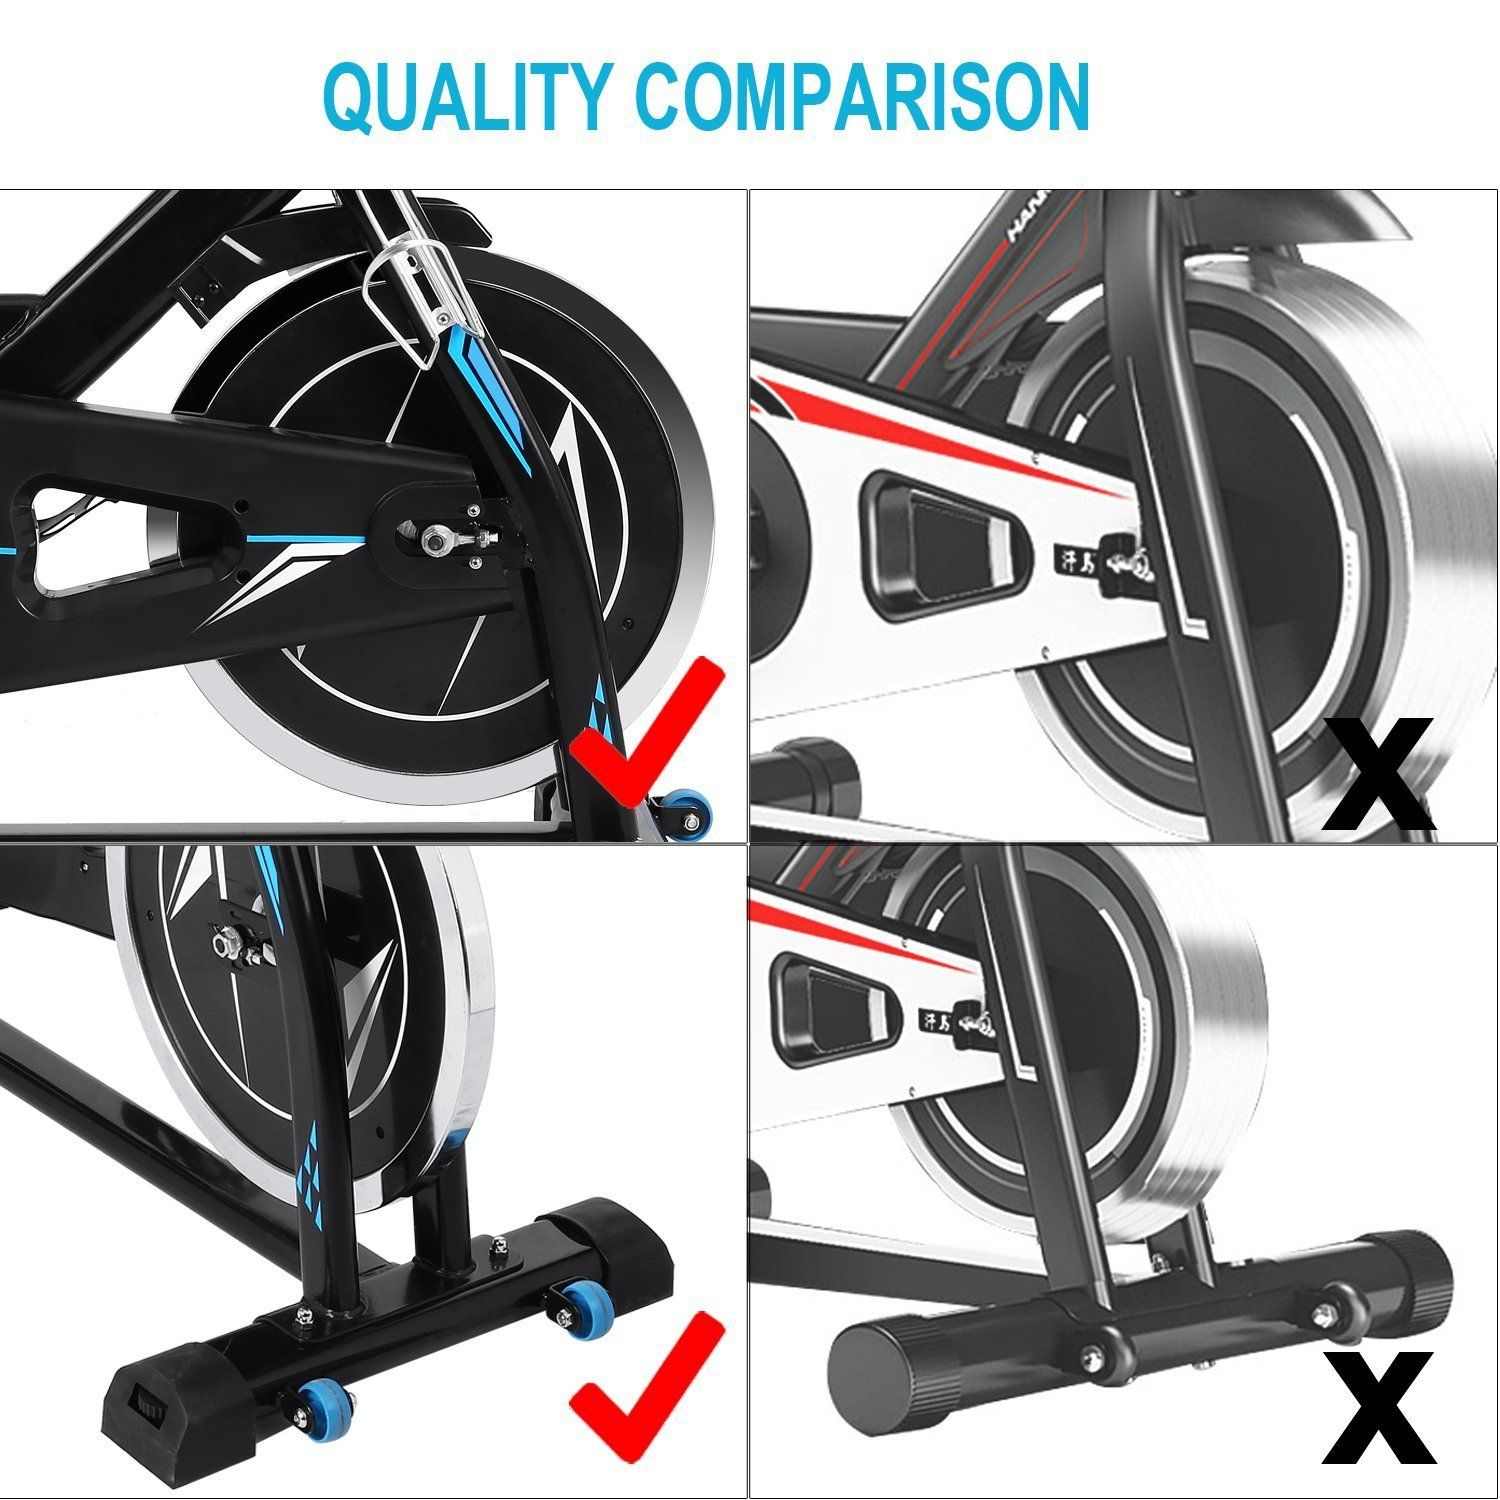 Vividy Indoor Stationary Cycling Bike With Lcd Monitor Home Exercise Cardio Bike Bicycle Spin Bike For Home Biking Workout Cycling Workout No Equipment Workout